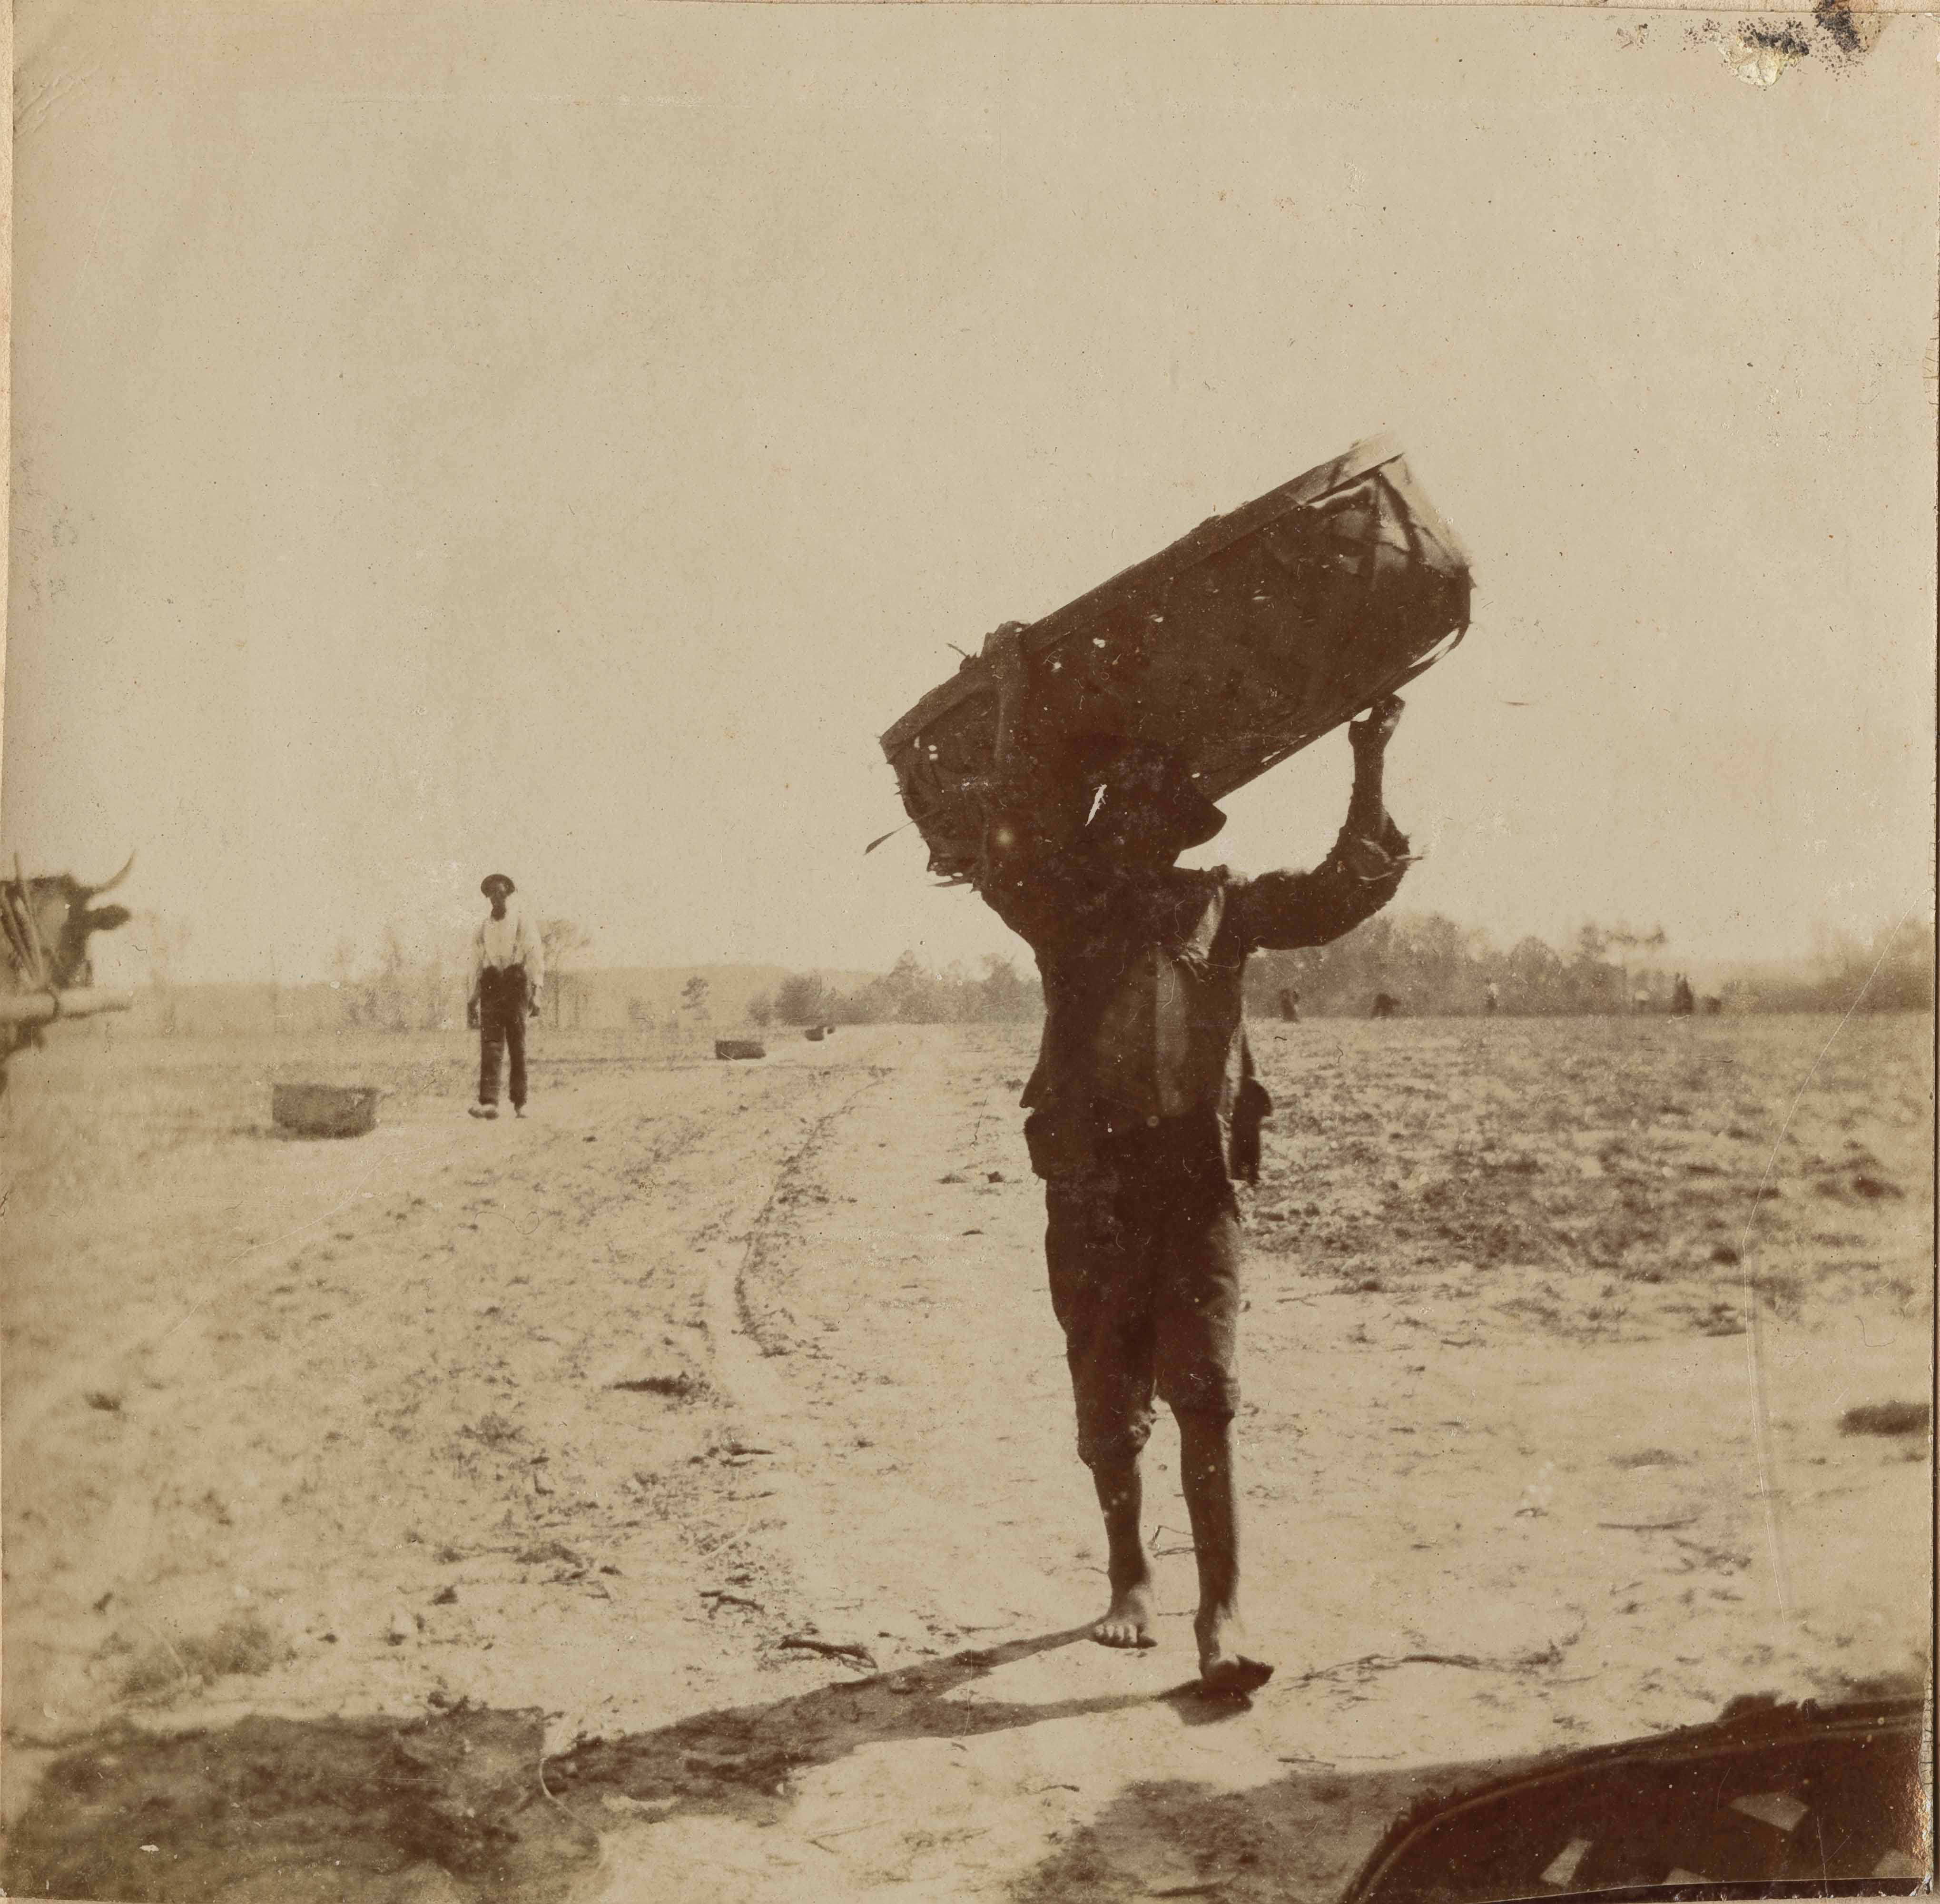 Another view of man carrying basket